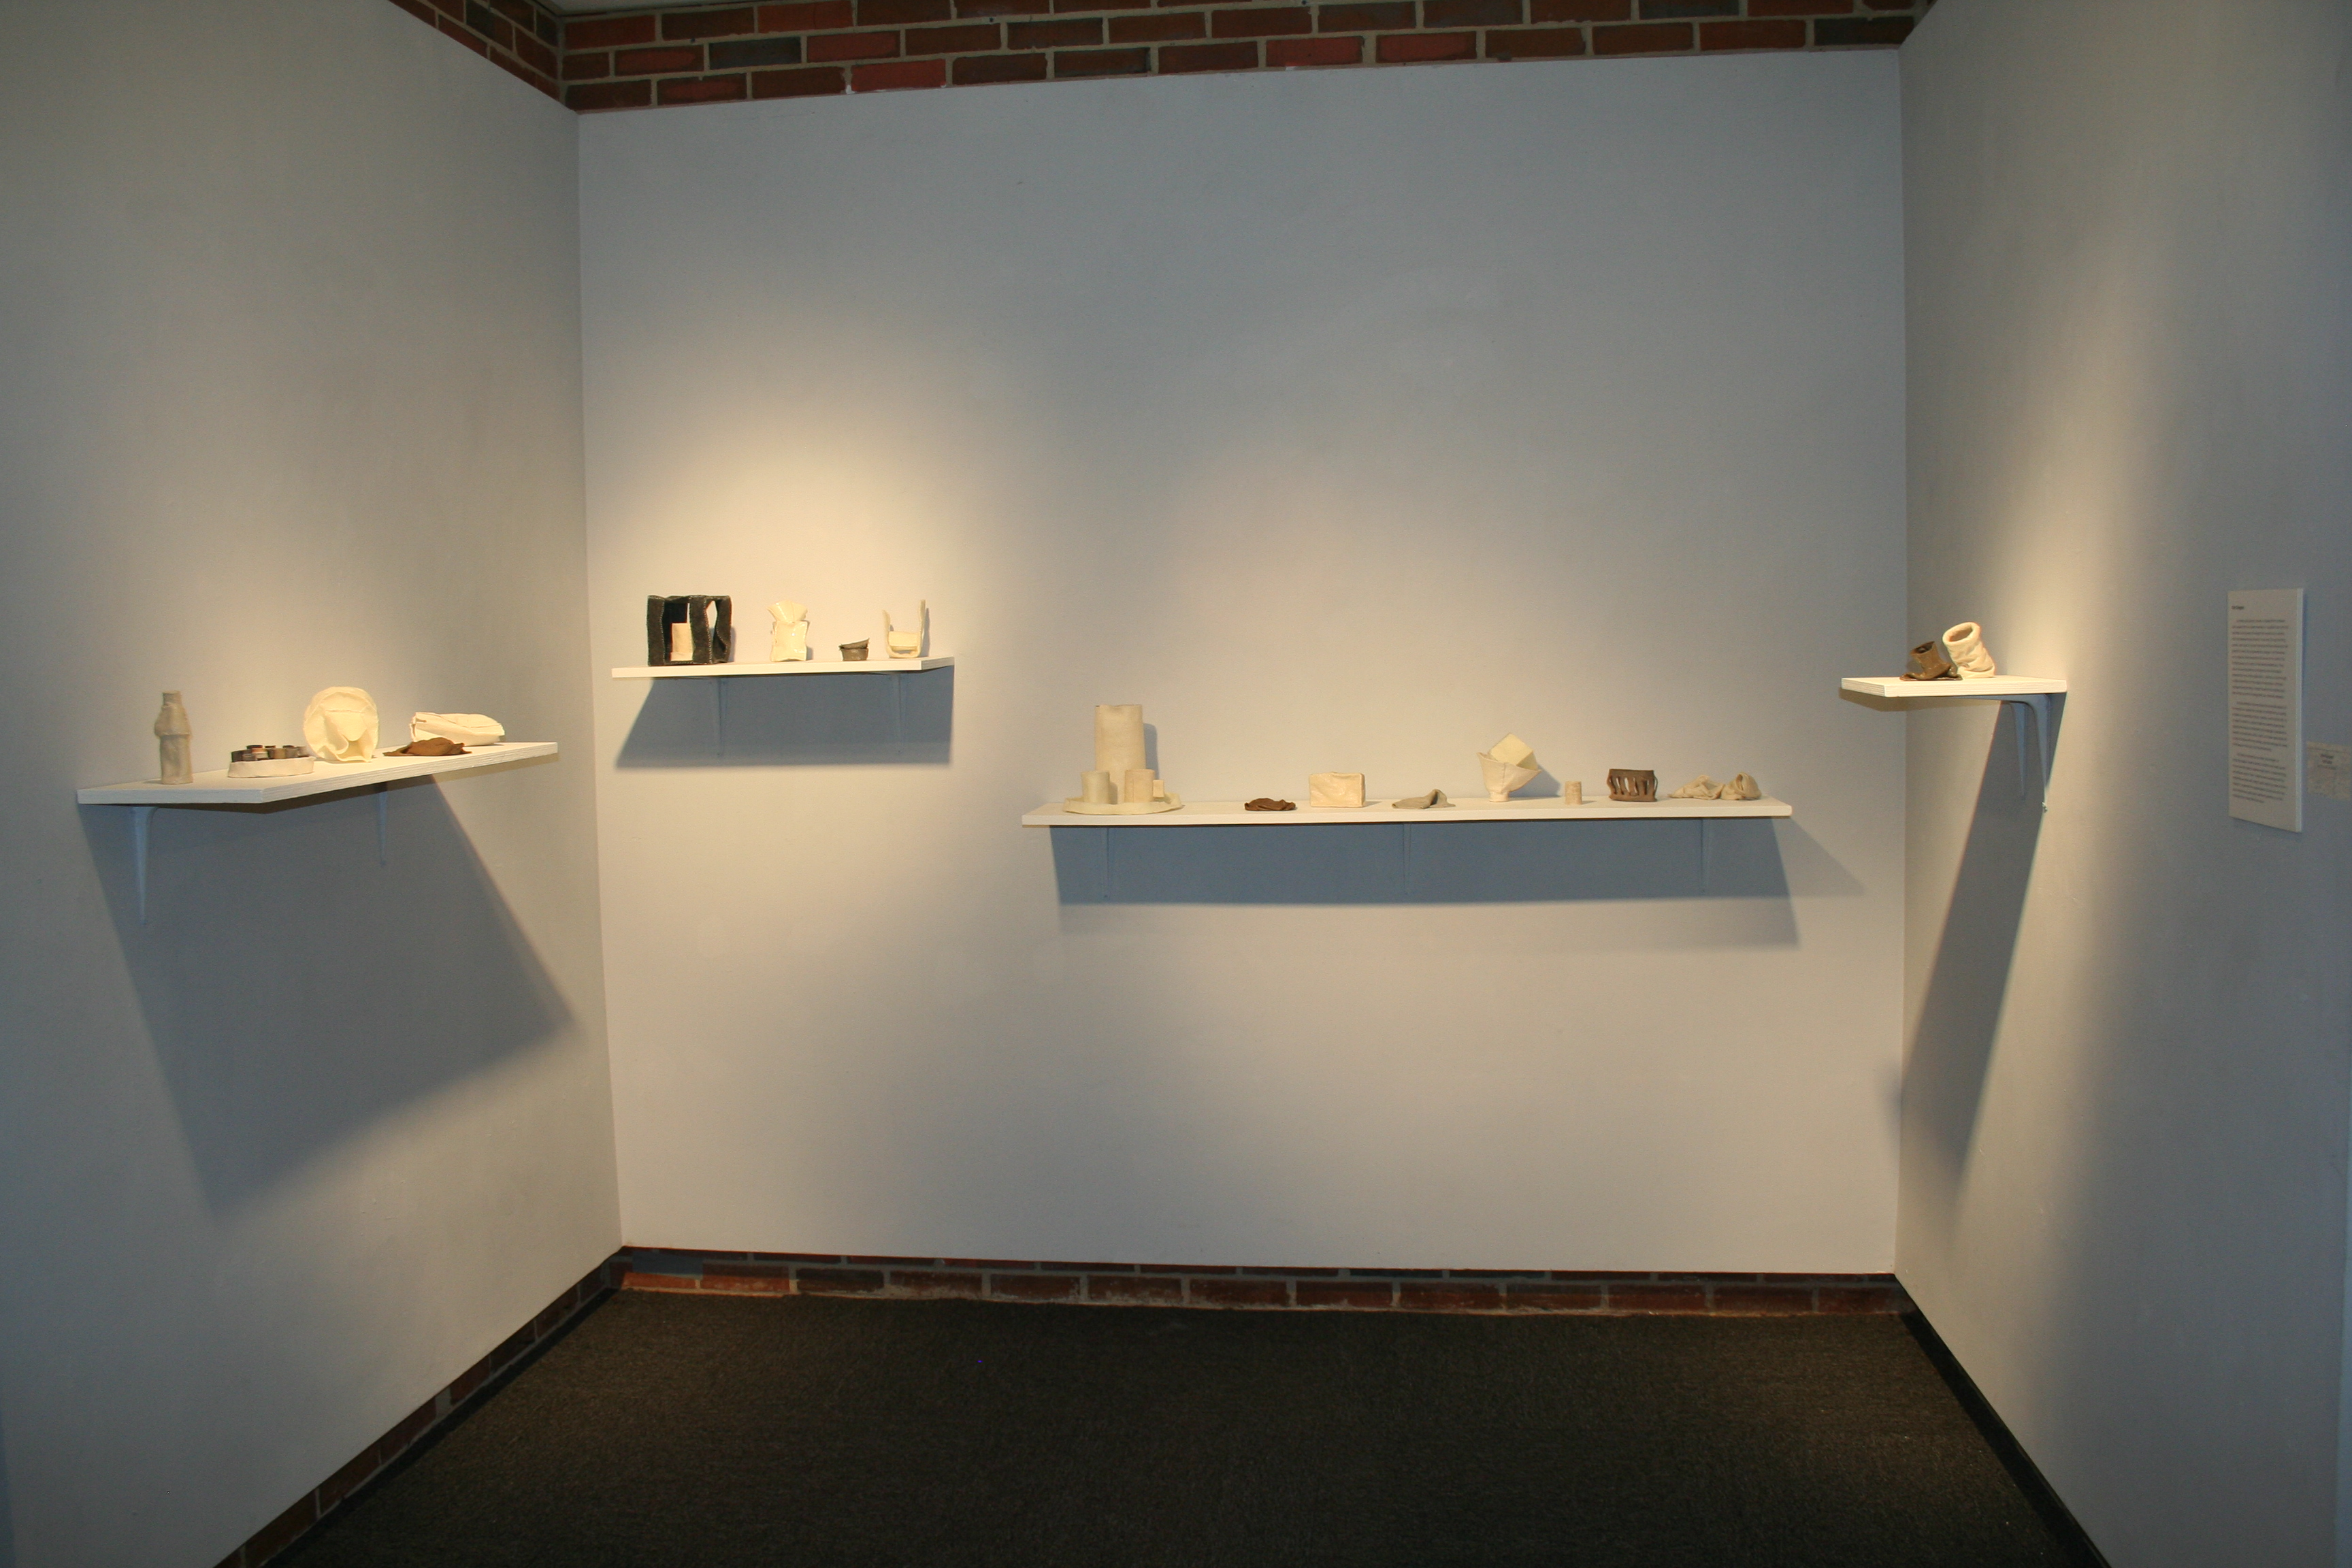 Display of hand made shapes on a shelf in a gallery space